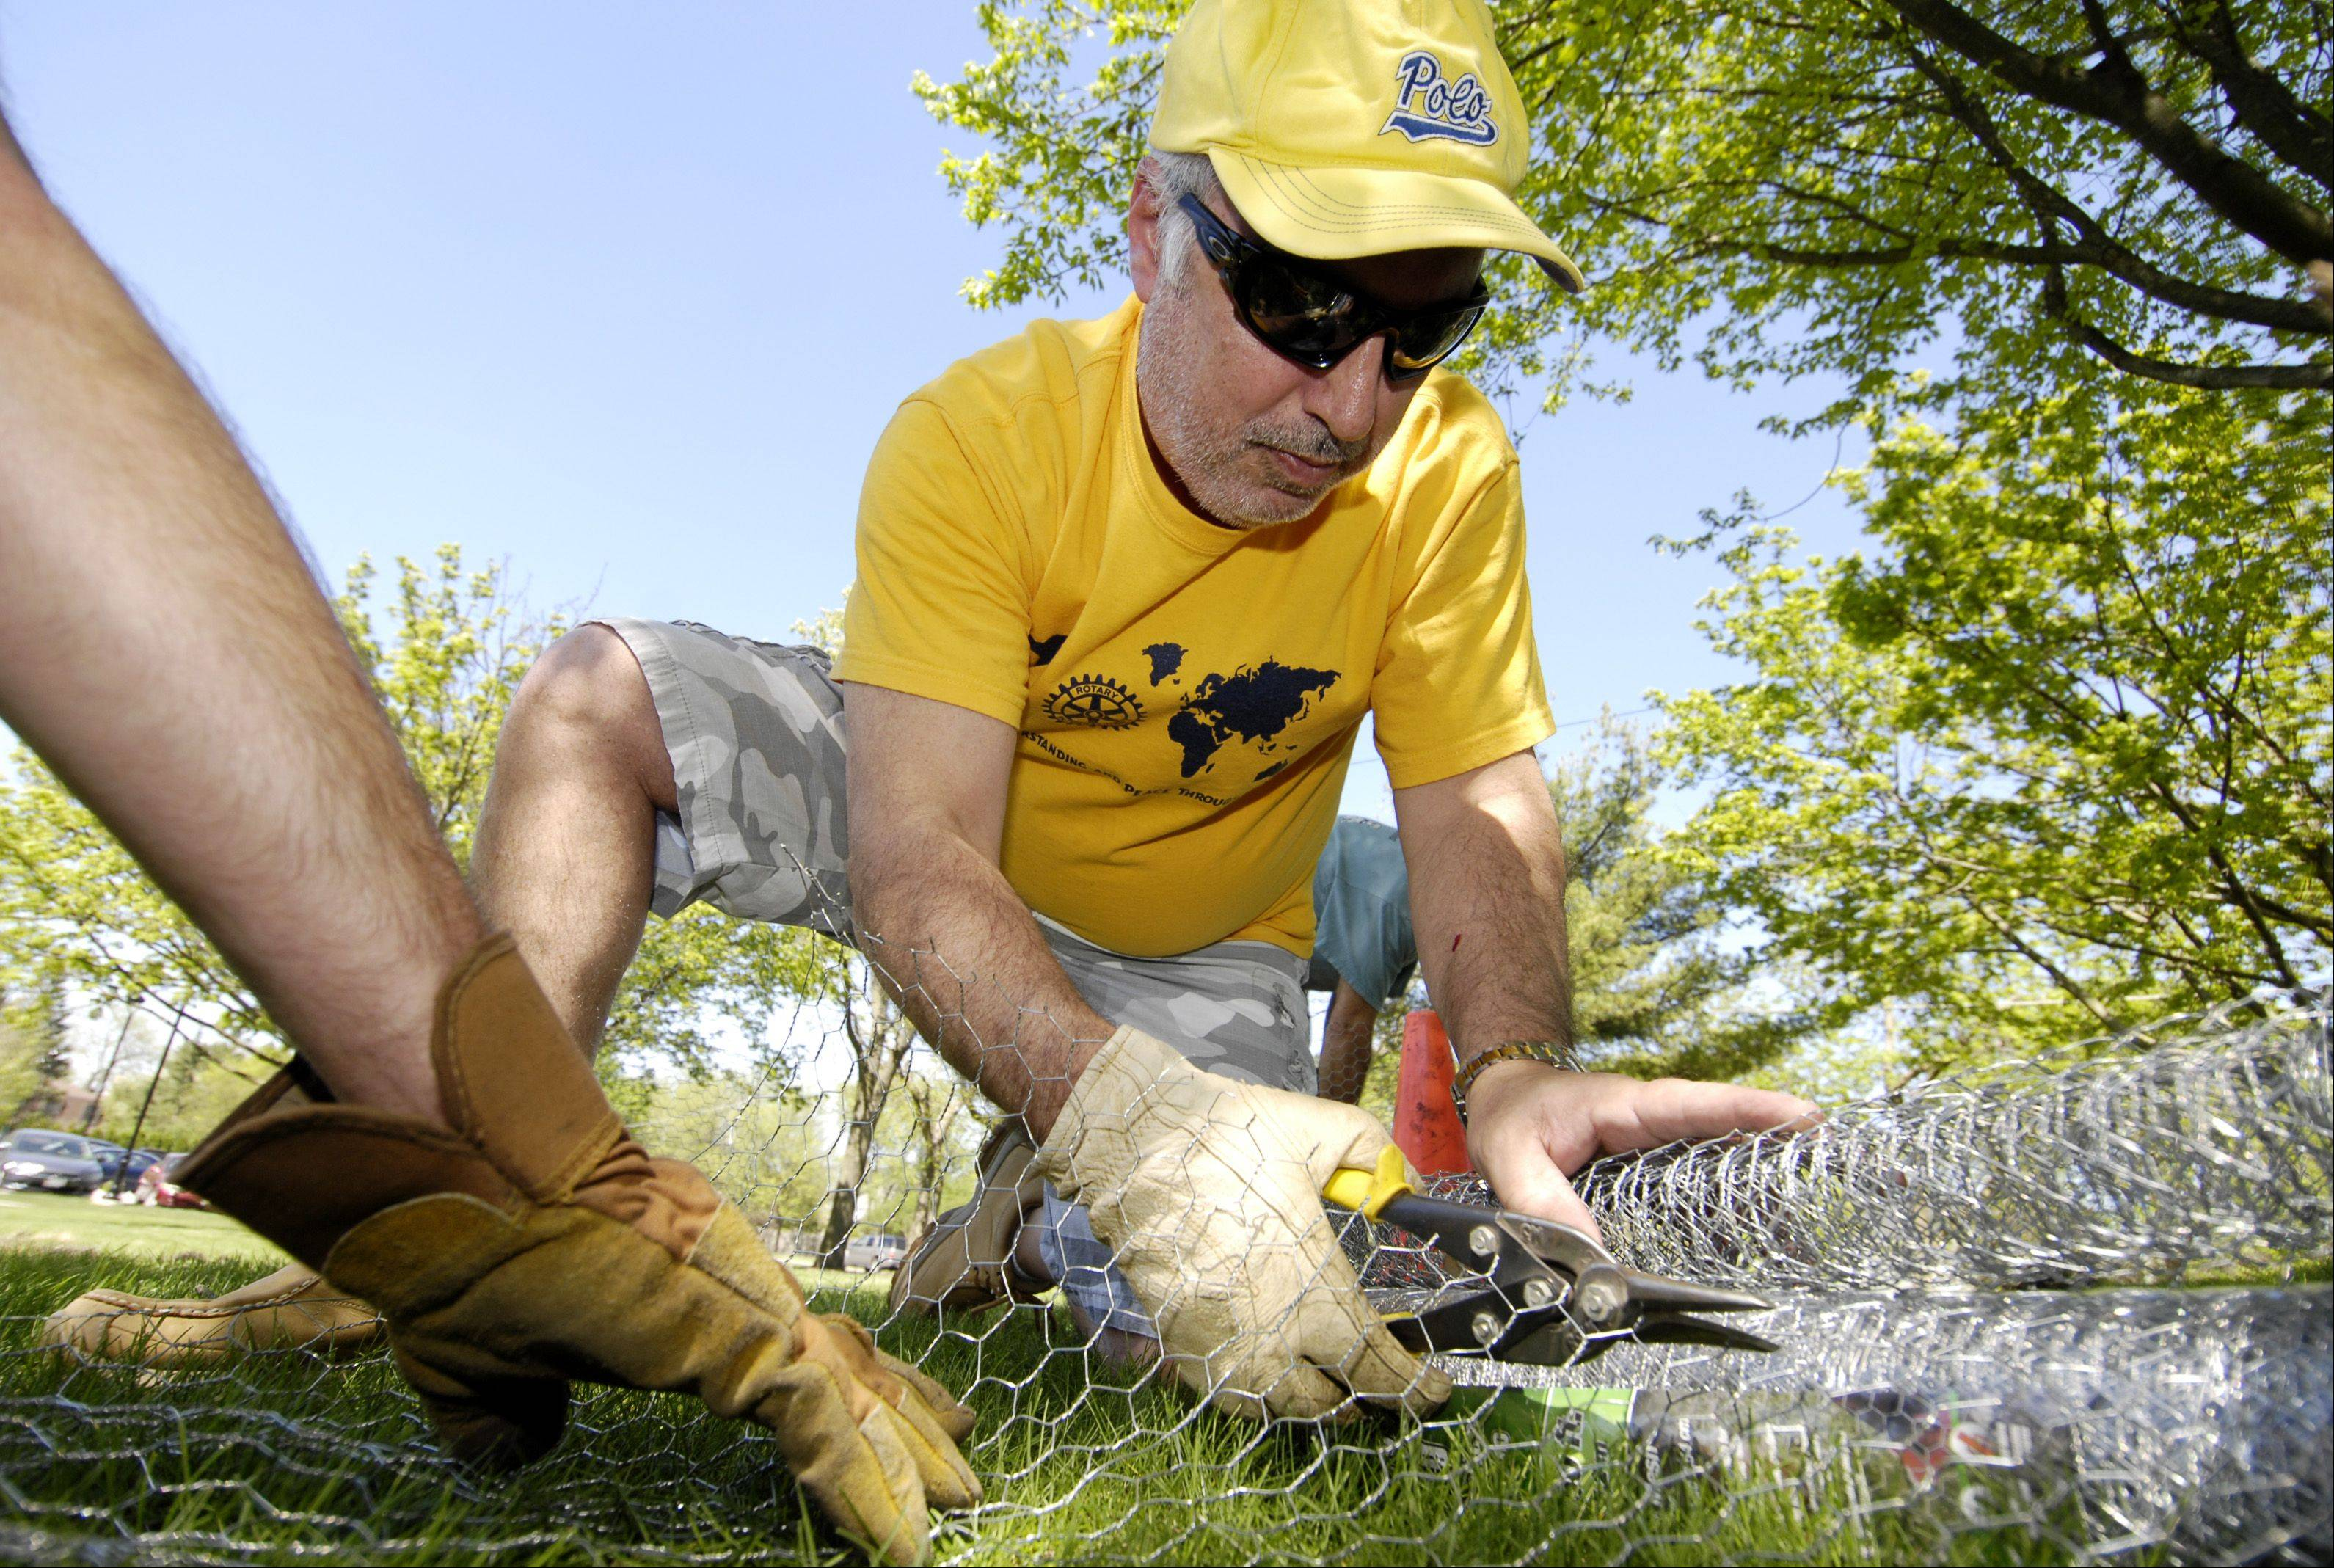 Joe Cuttone, President of the Wheaton Rotary Club, cuts wire mesh for cages to be placed around the nearly 200 oak saplings at Seven Gables Park in Wheaton.